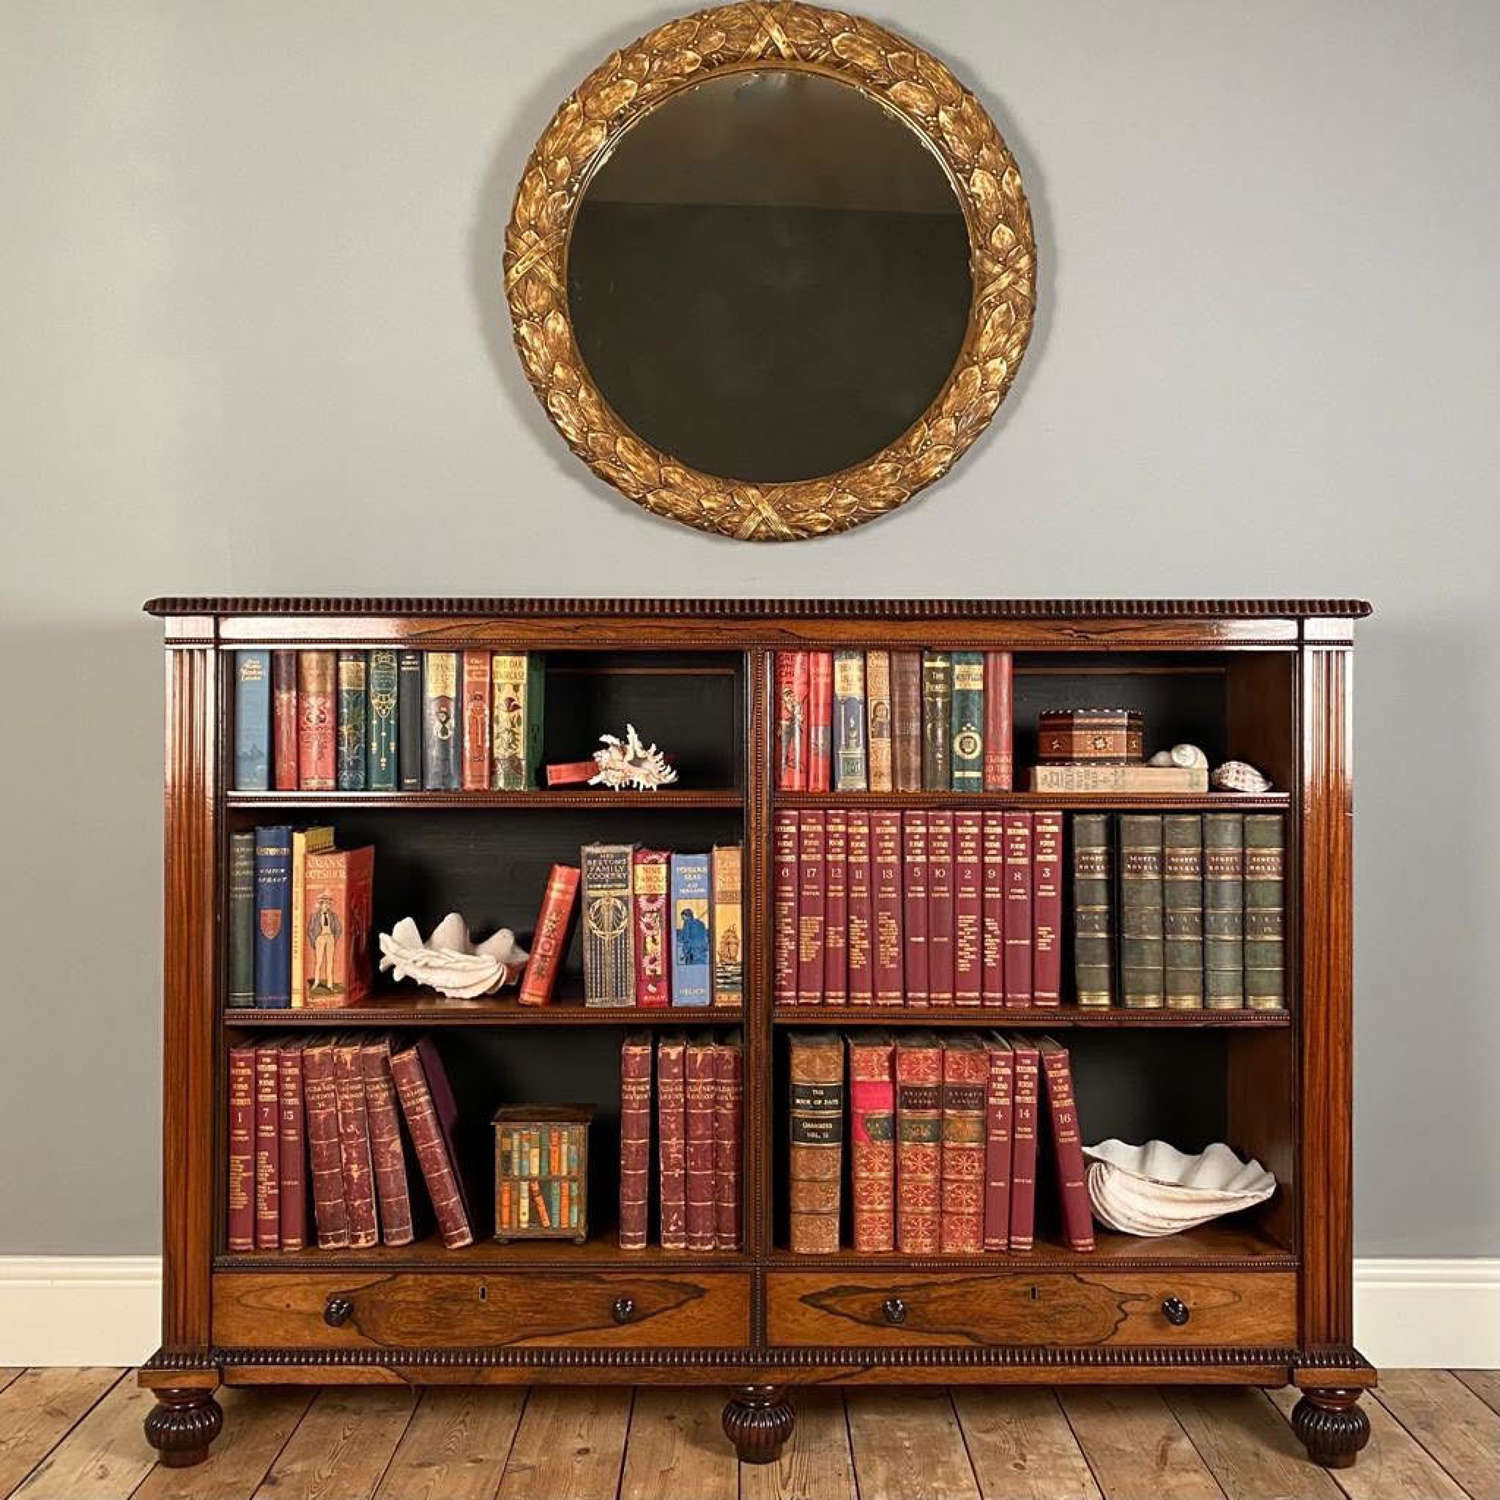 George IV Rosewood Bookcase